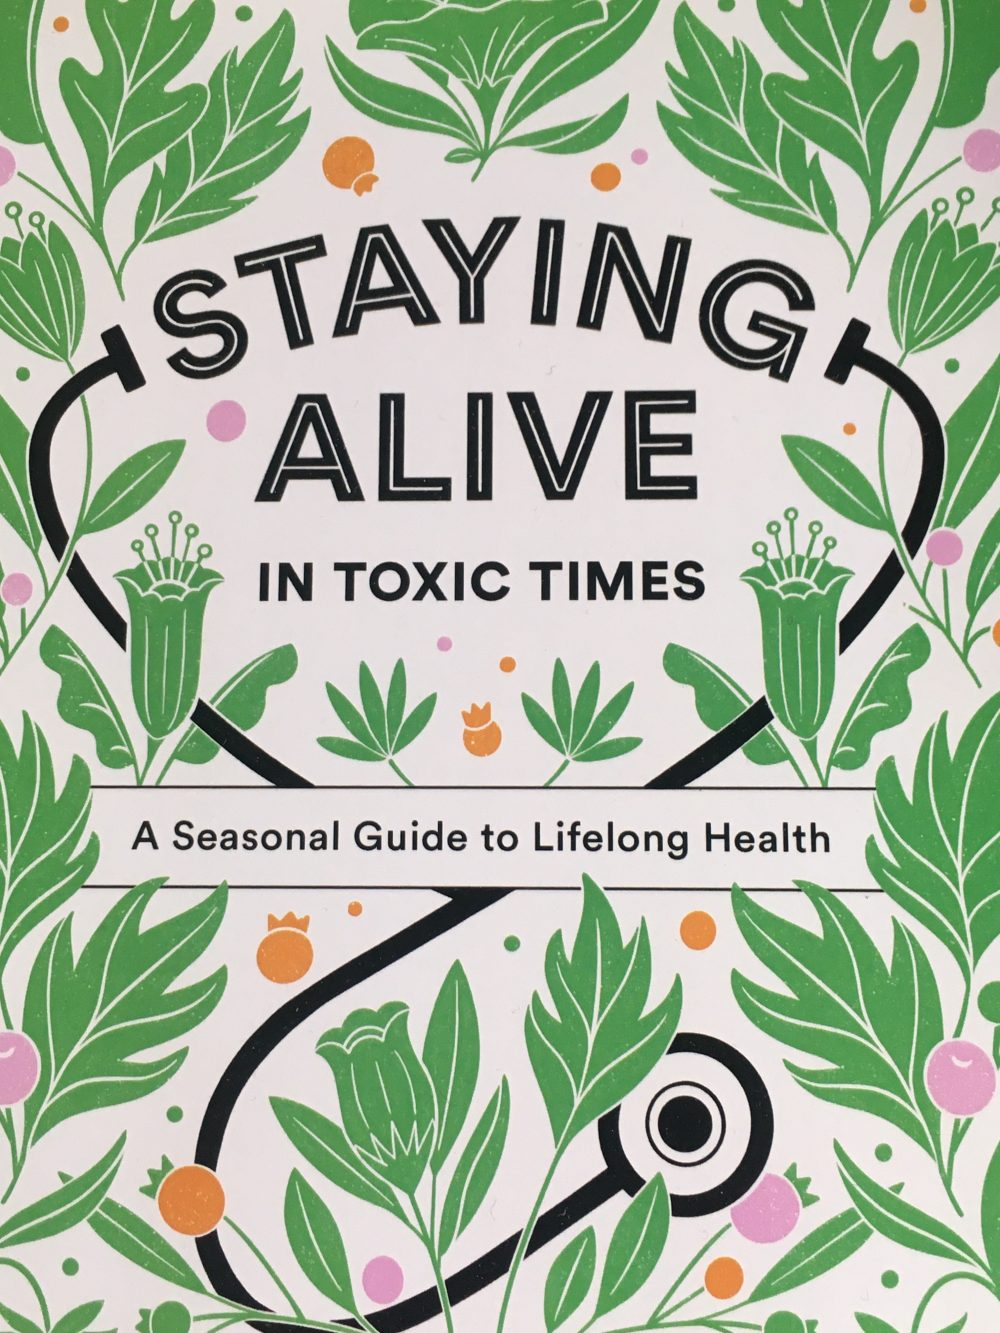 image for An Interview with Dr Jenny Goodman, author of Staying Alive in Toxic Times